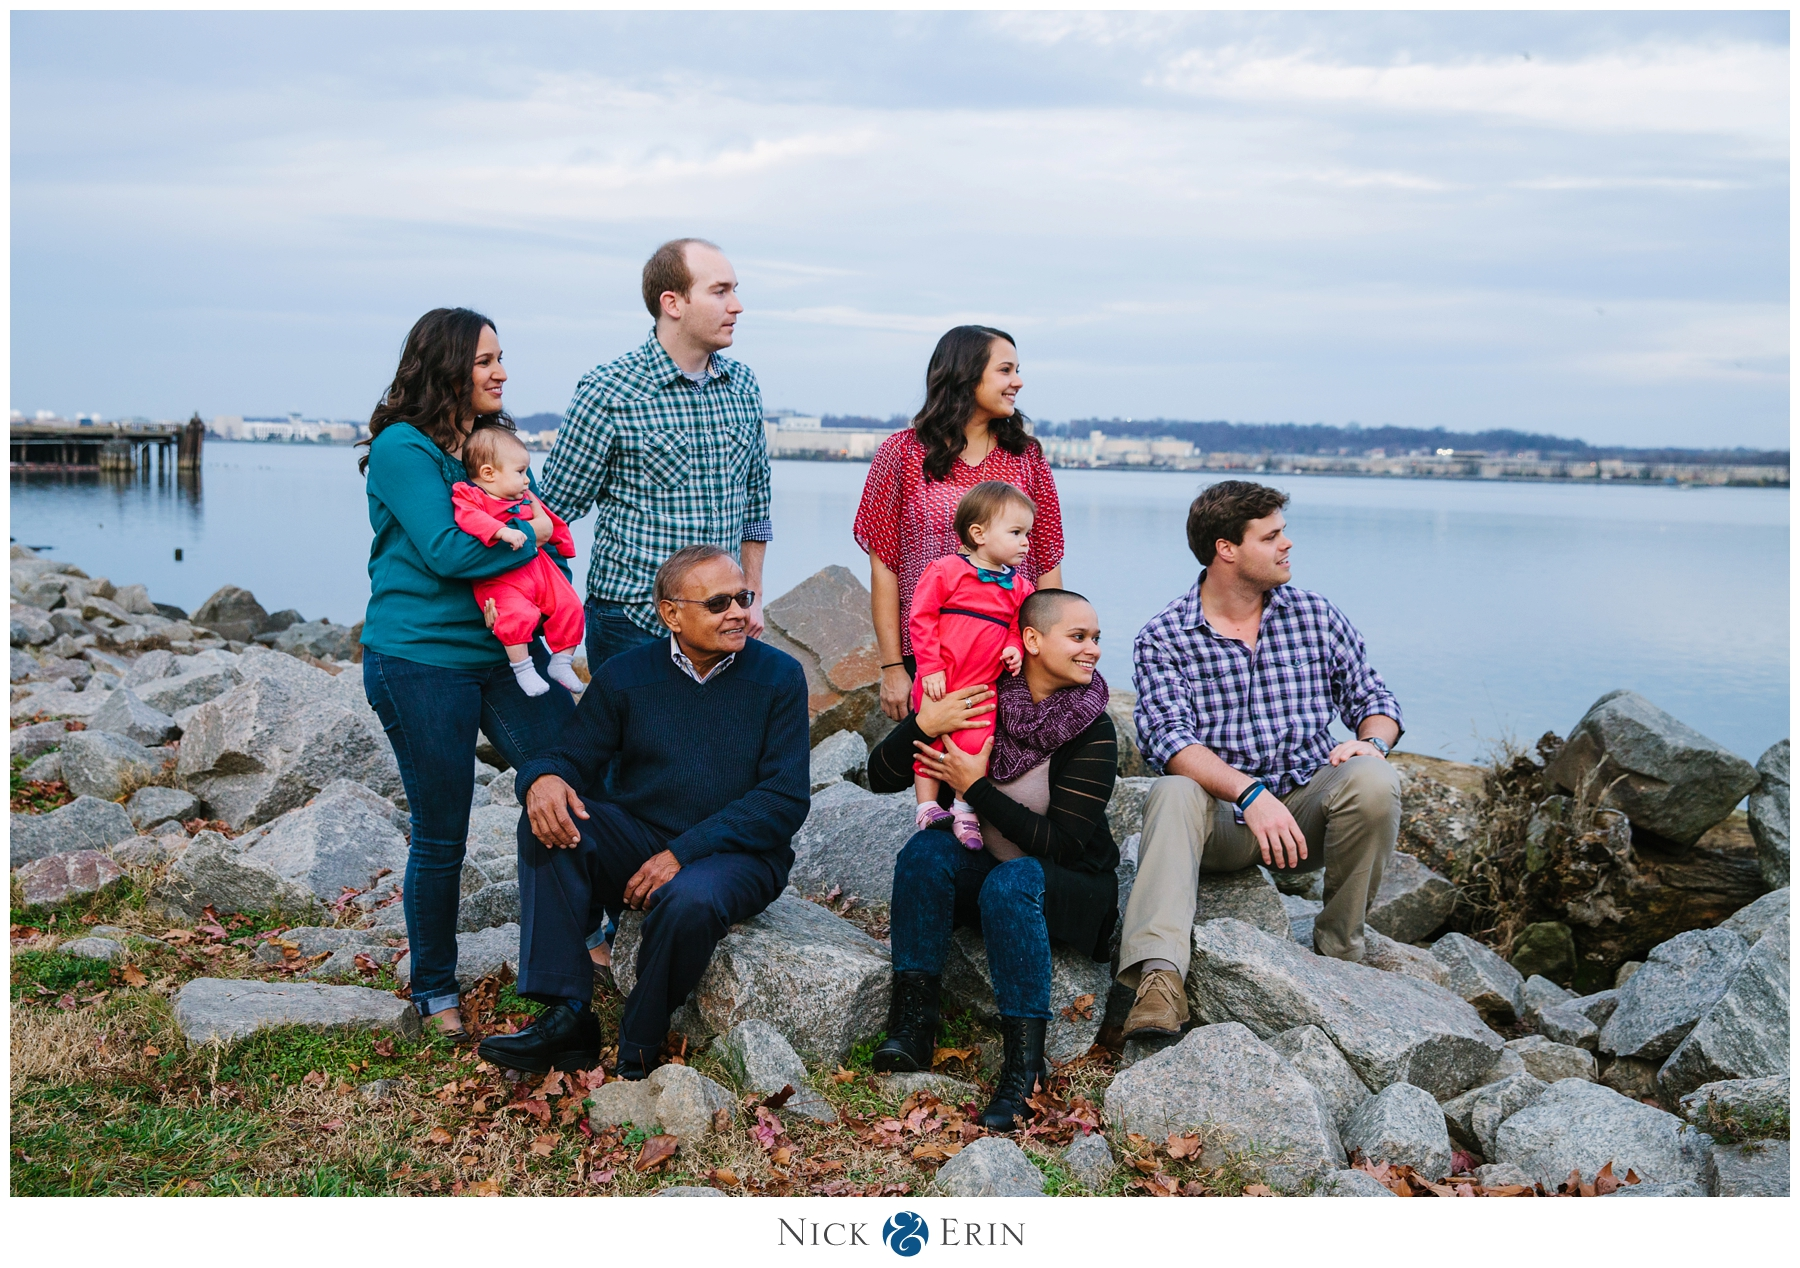 Donner_Photography_Hoesly Family Portraits_0006